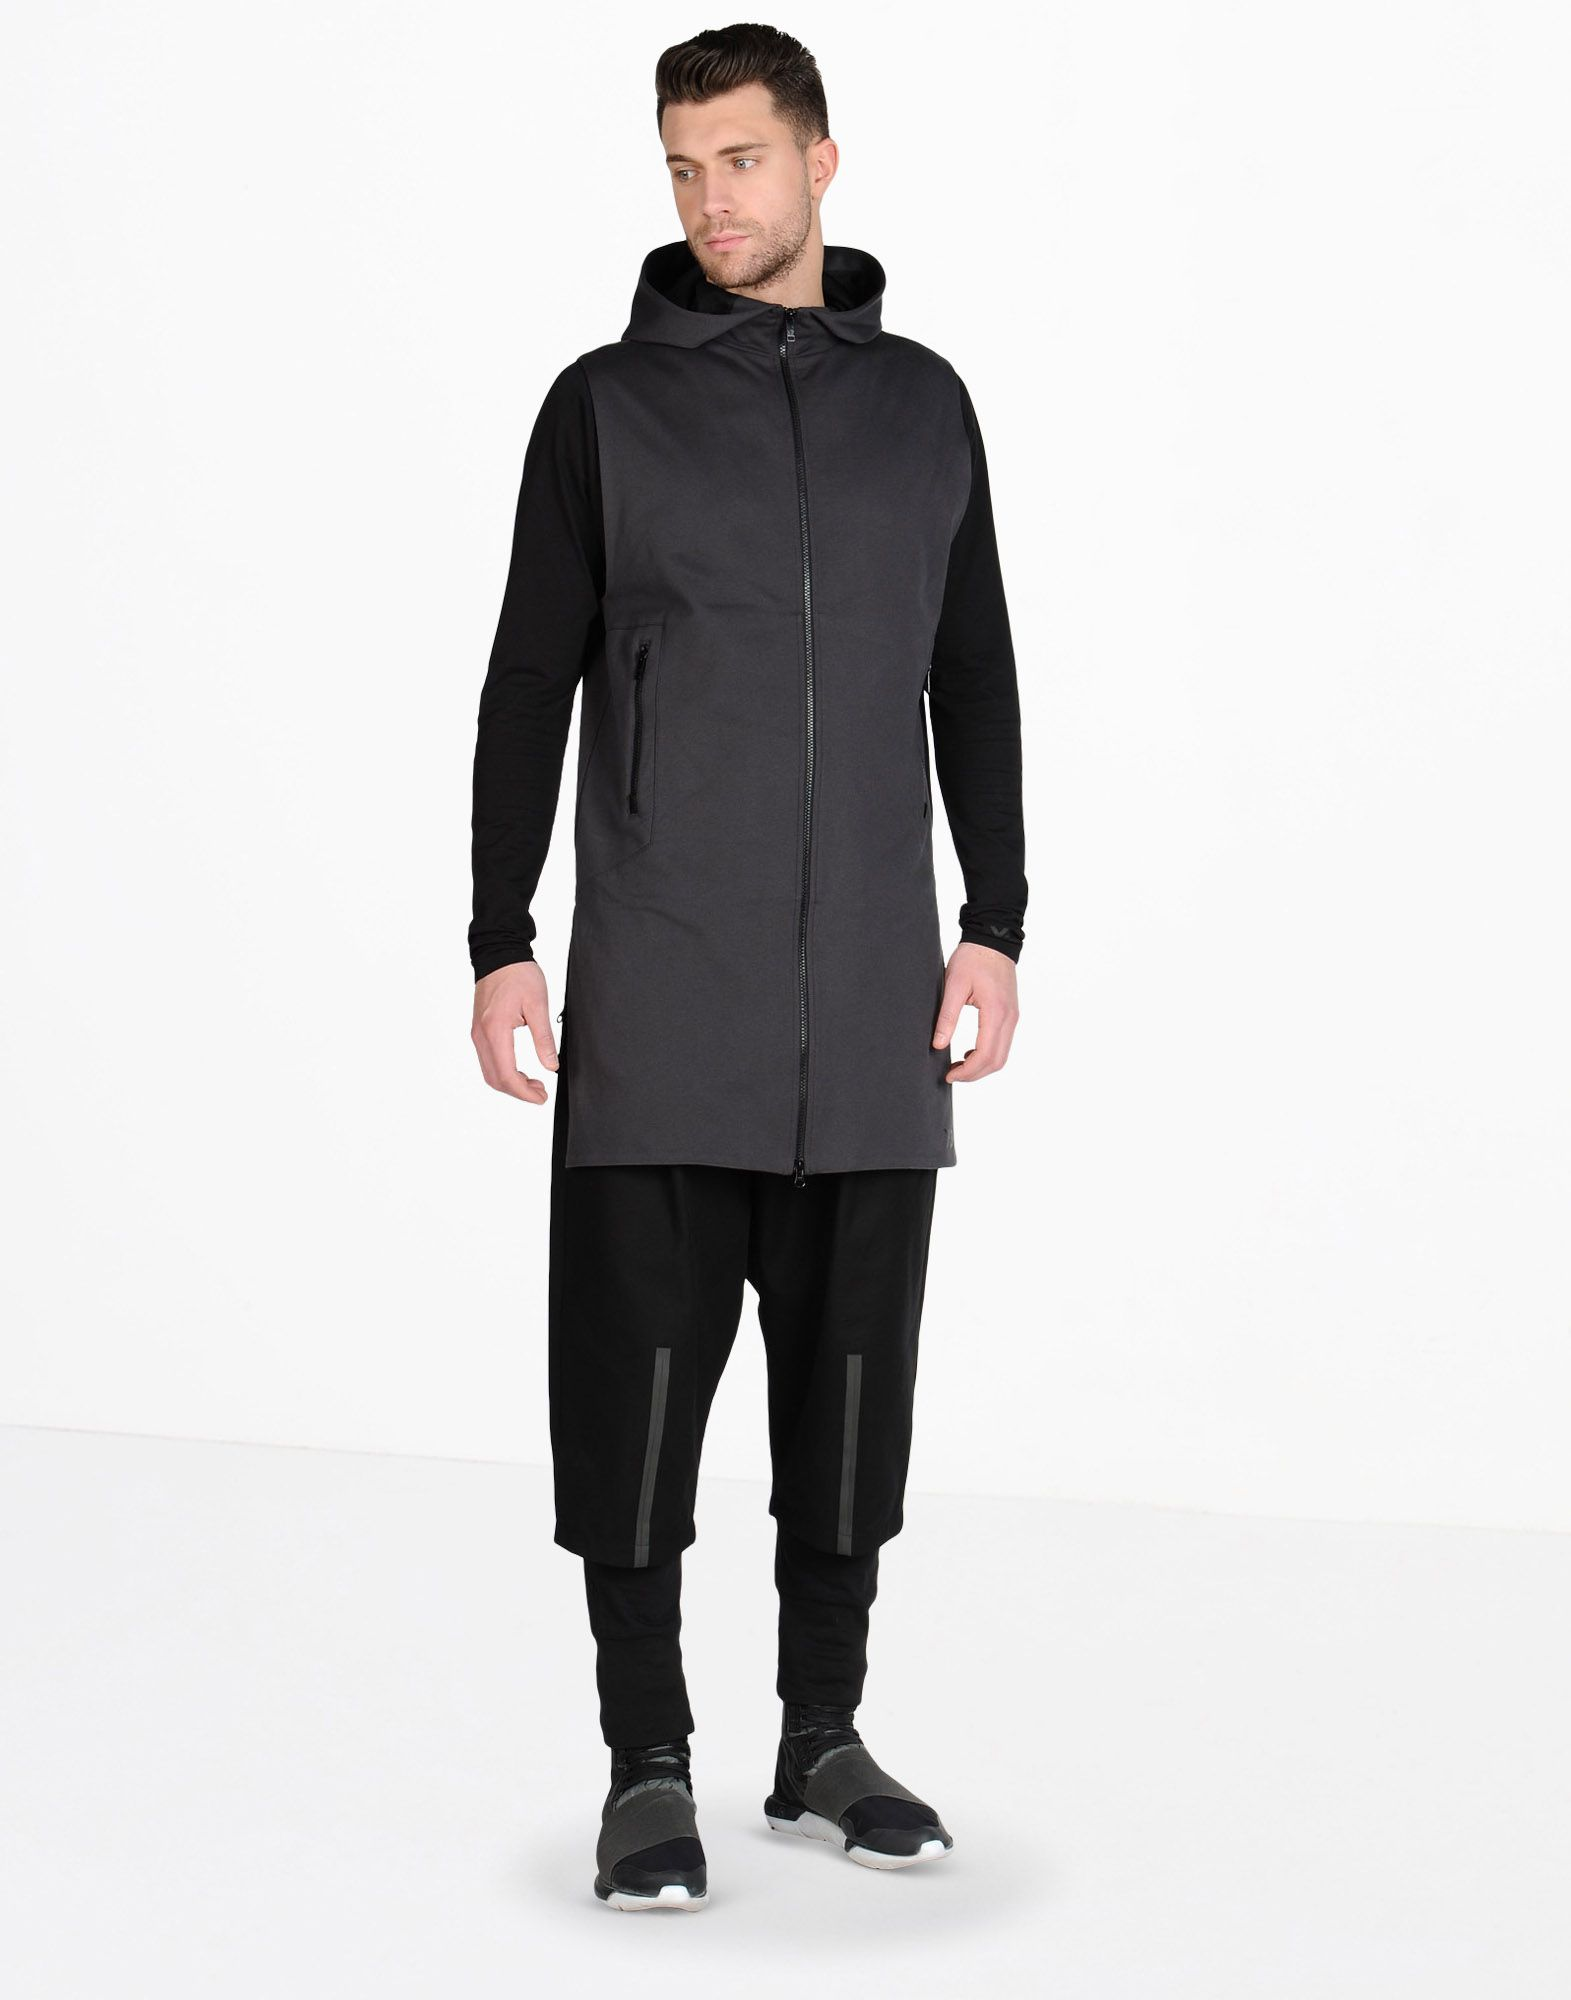 Y-3 3-STRIPES FT COVER-UP COATS & JACKETS man Y-3 adidas